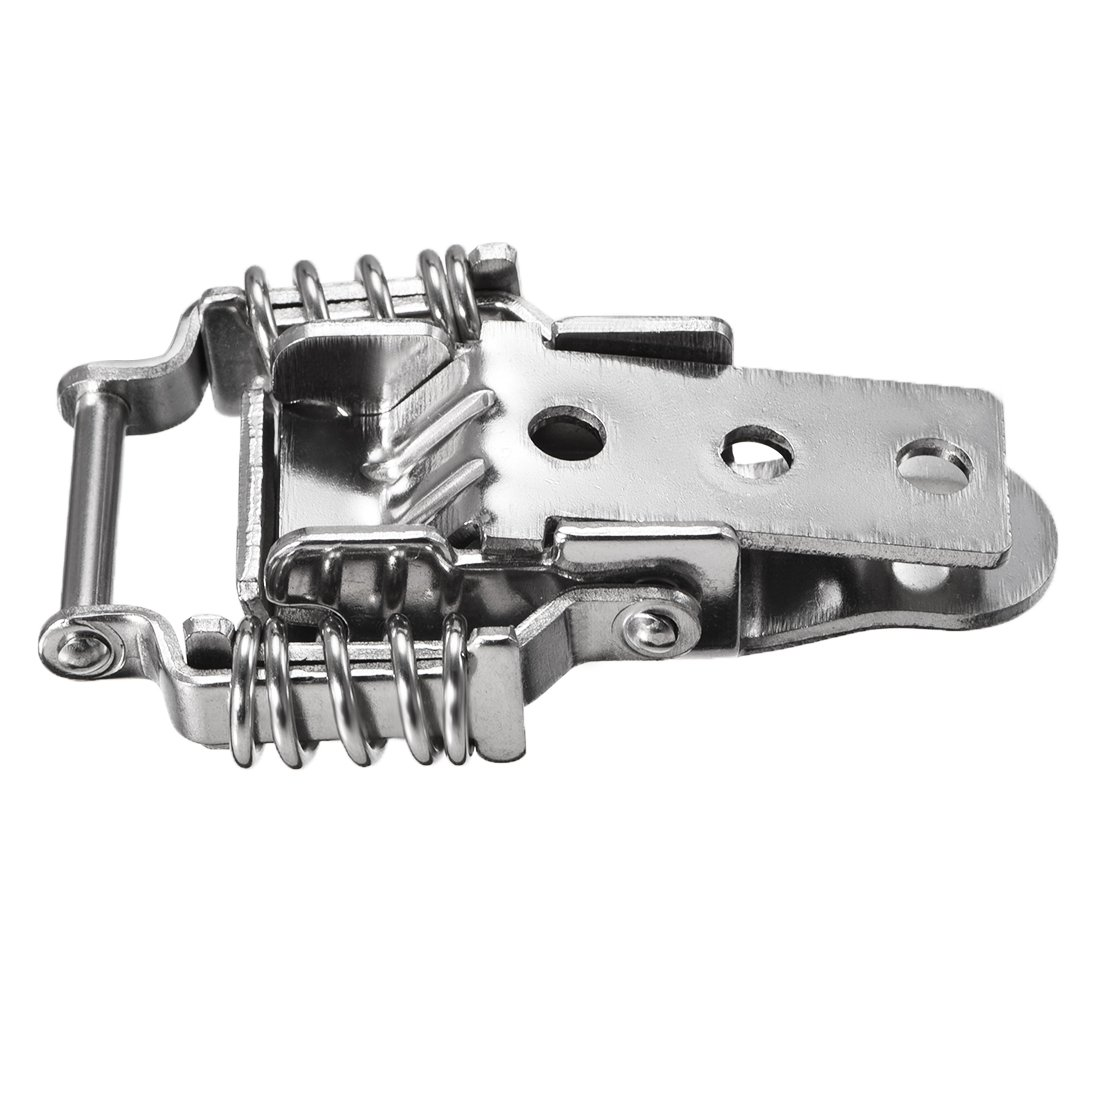 2 Set Aviation Toolbox Silver Tone Metal Draw Toggle Latch Catch 73mm uxcell a14021800ux0557